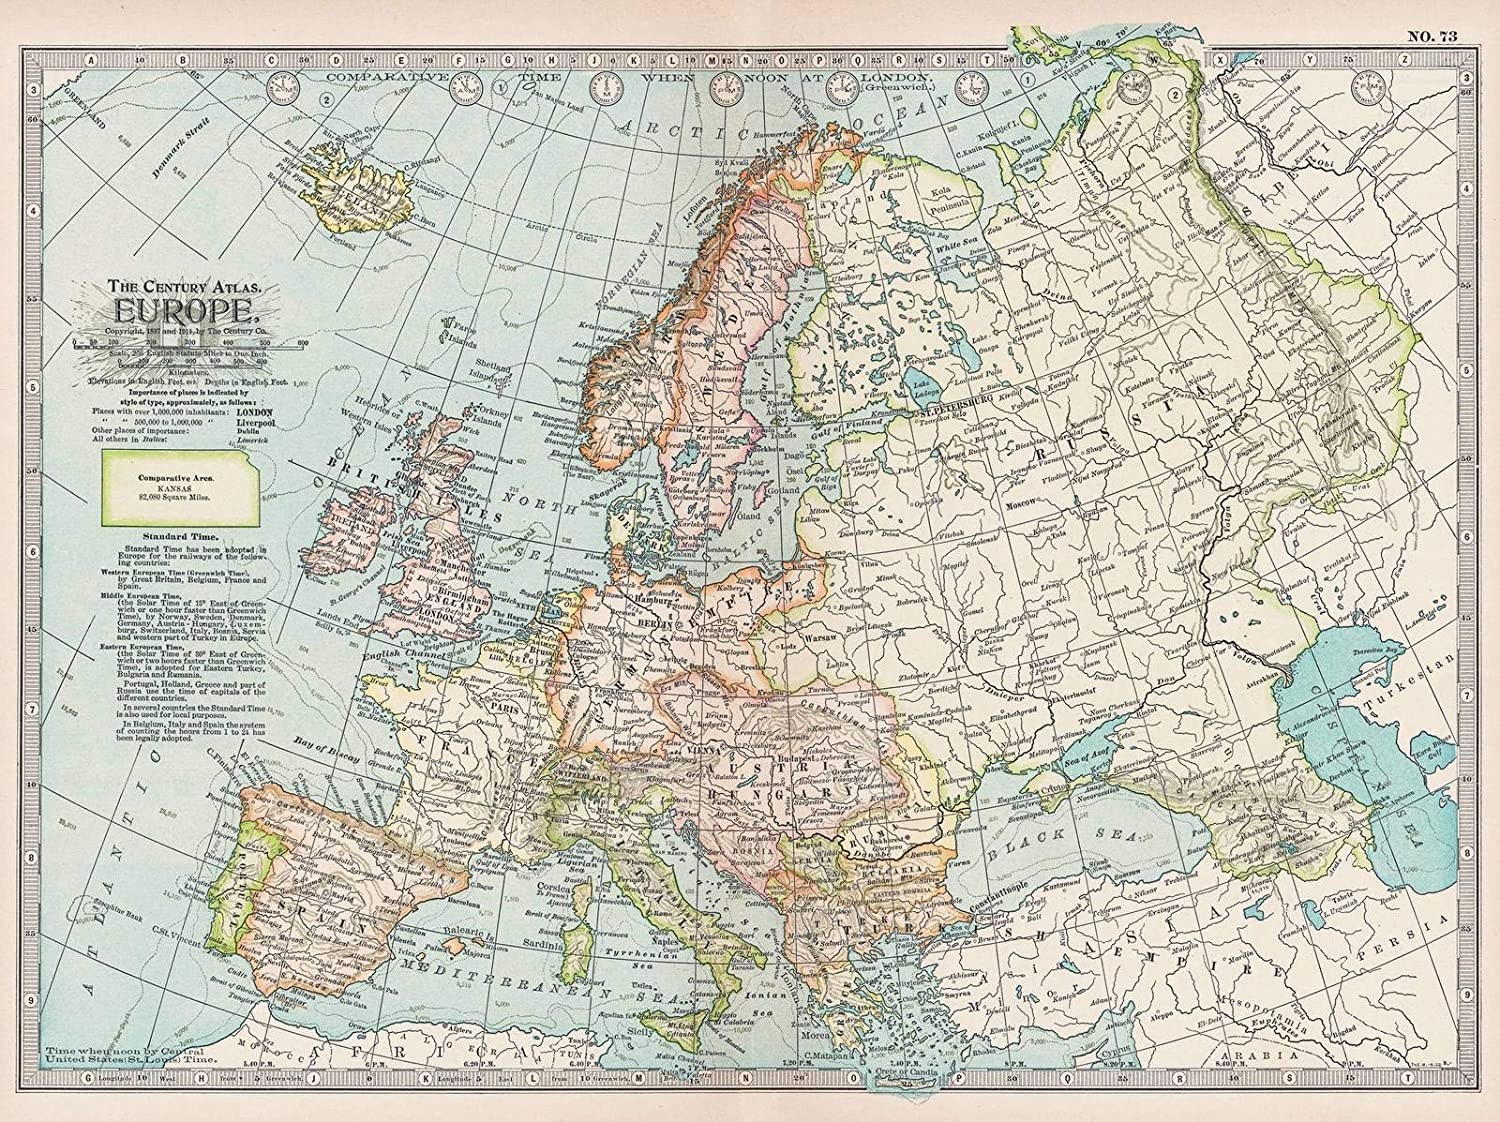 12 Map set of Europe NEW Reproduction Fun Atlas Vintage Antique Old Color Colour